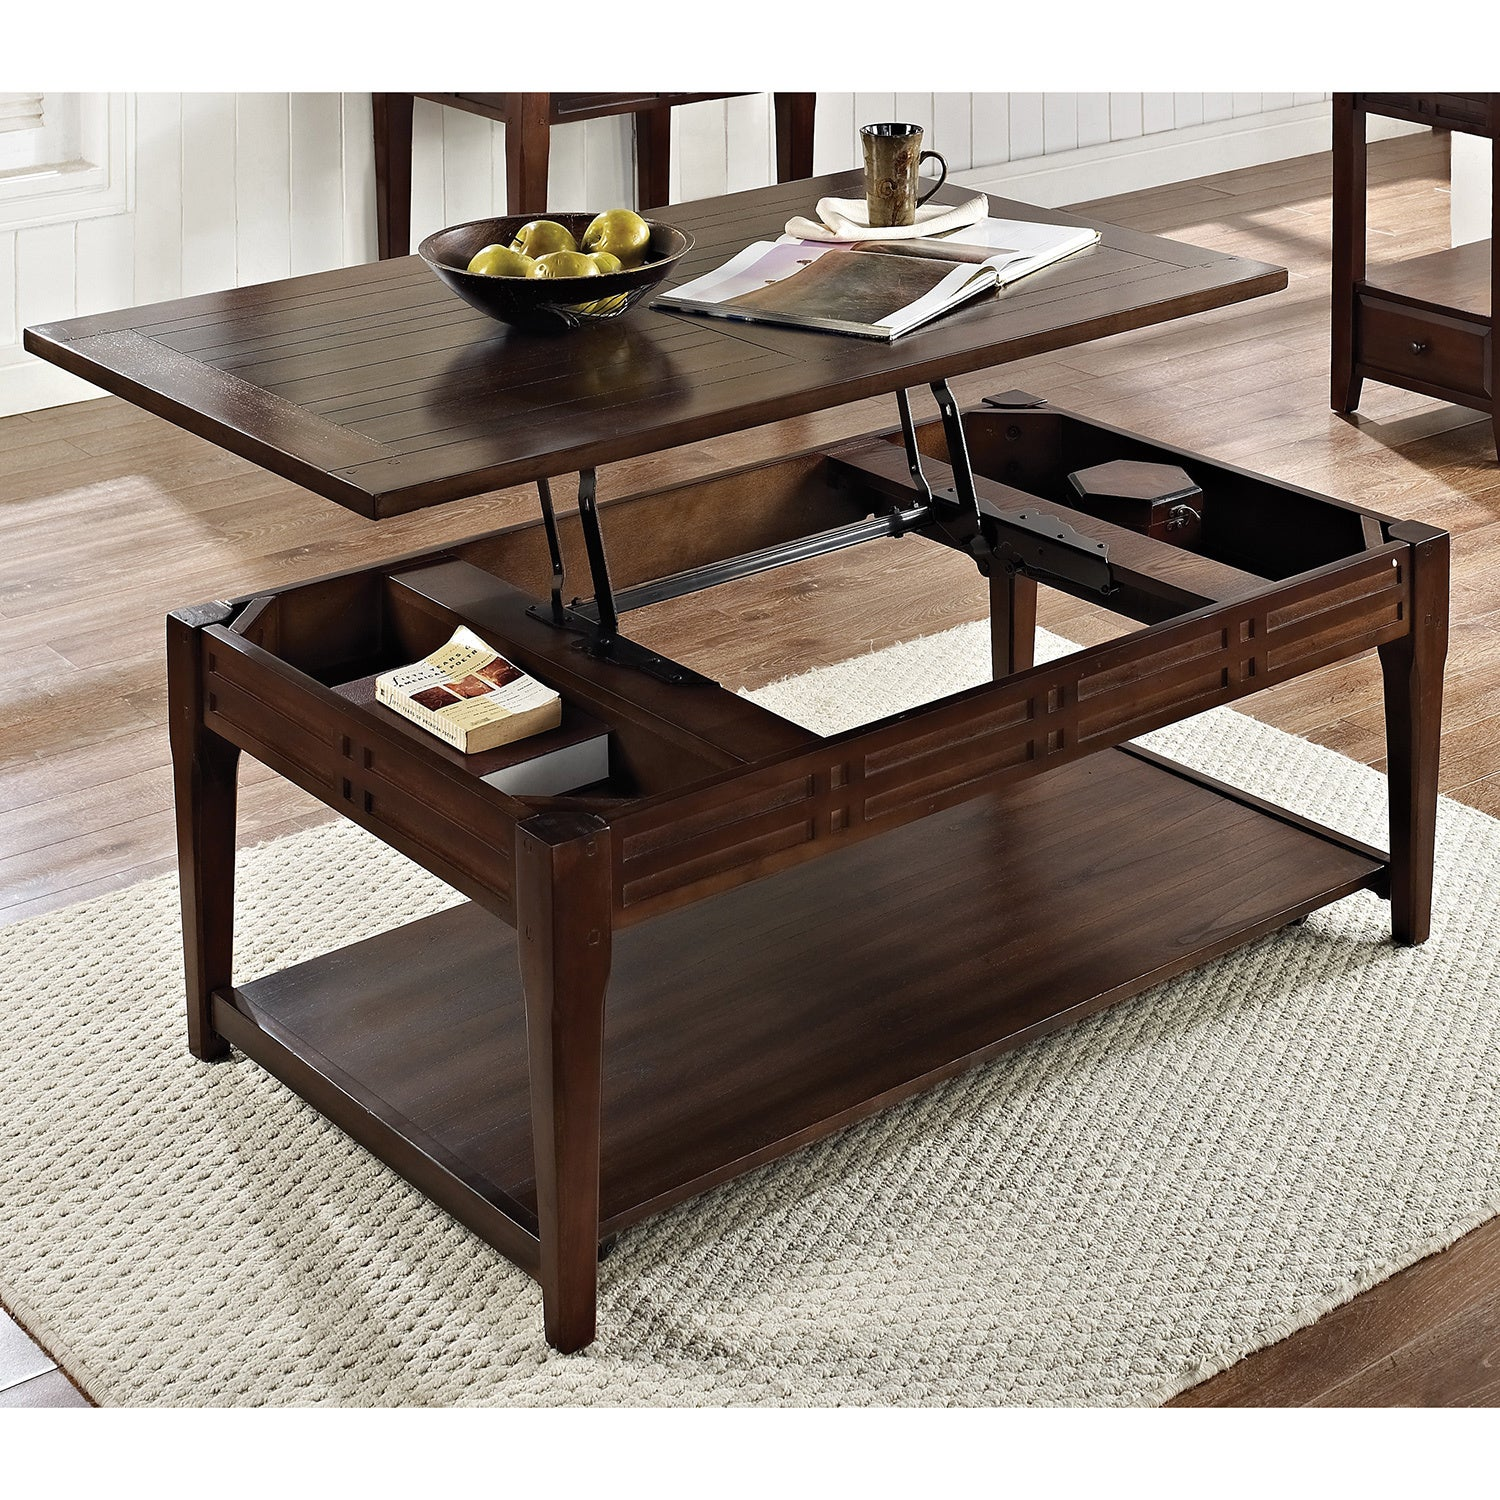 Beau Crosby Mocha Cherry Lift Top Coffee Table With Casters By Greyson Living